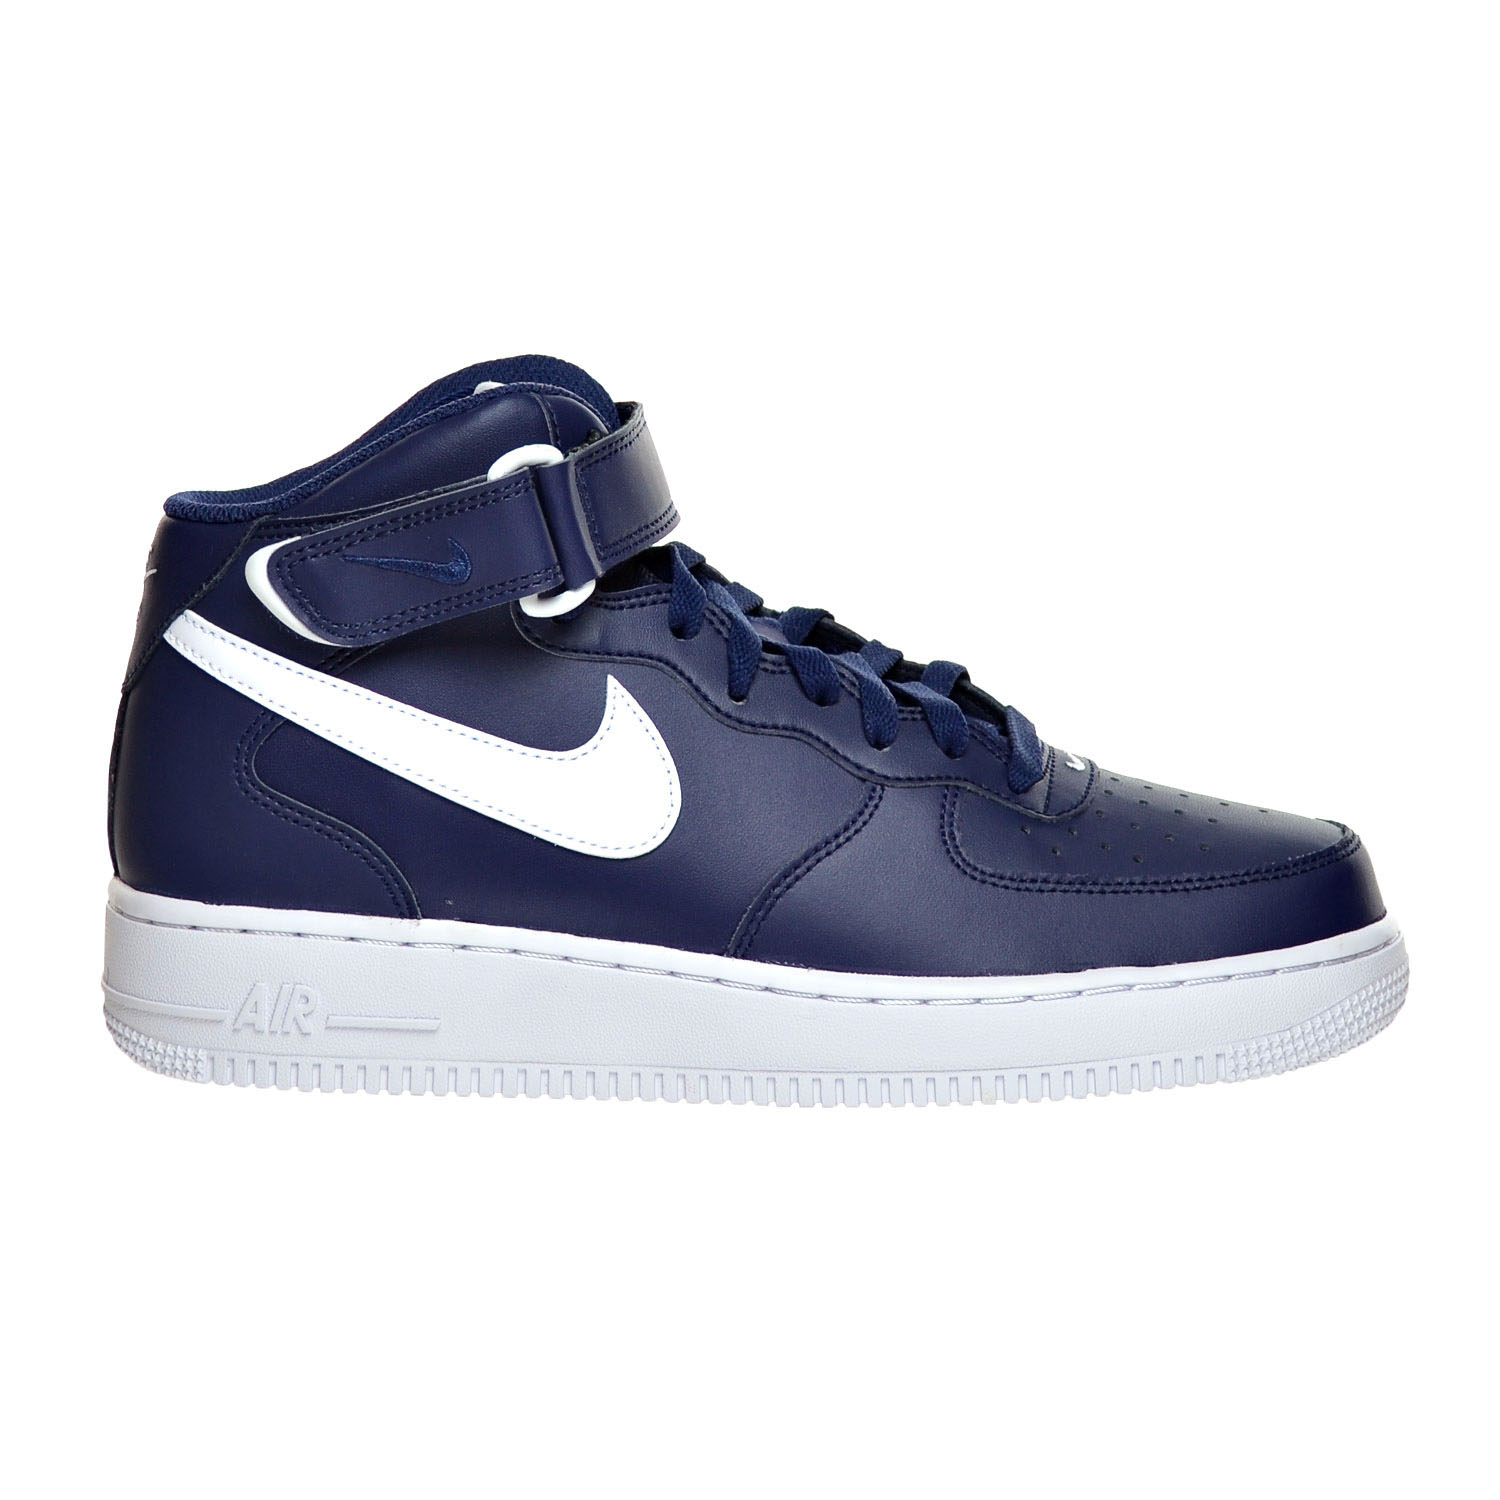 Nike Air Force 1 Mid '07  Men's Shoes Midnight Navy/White...